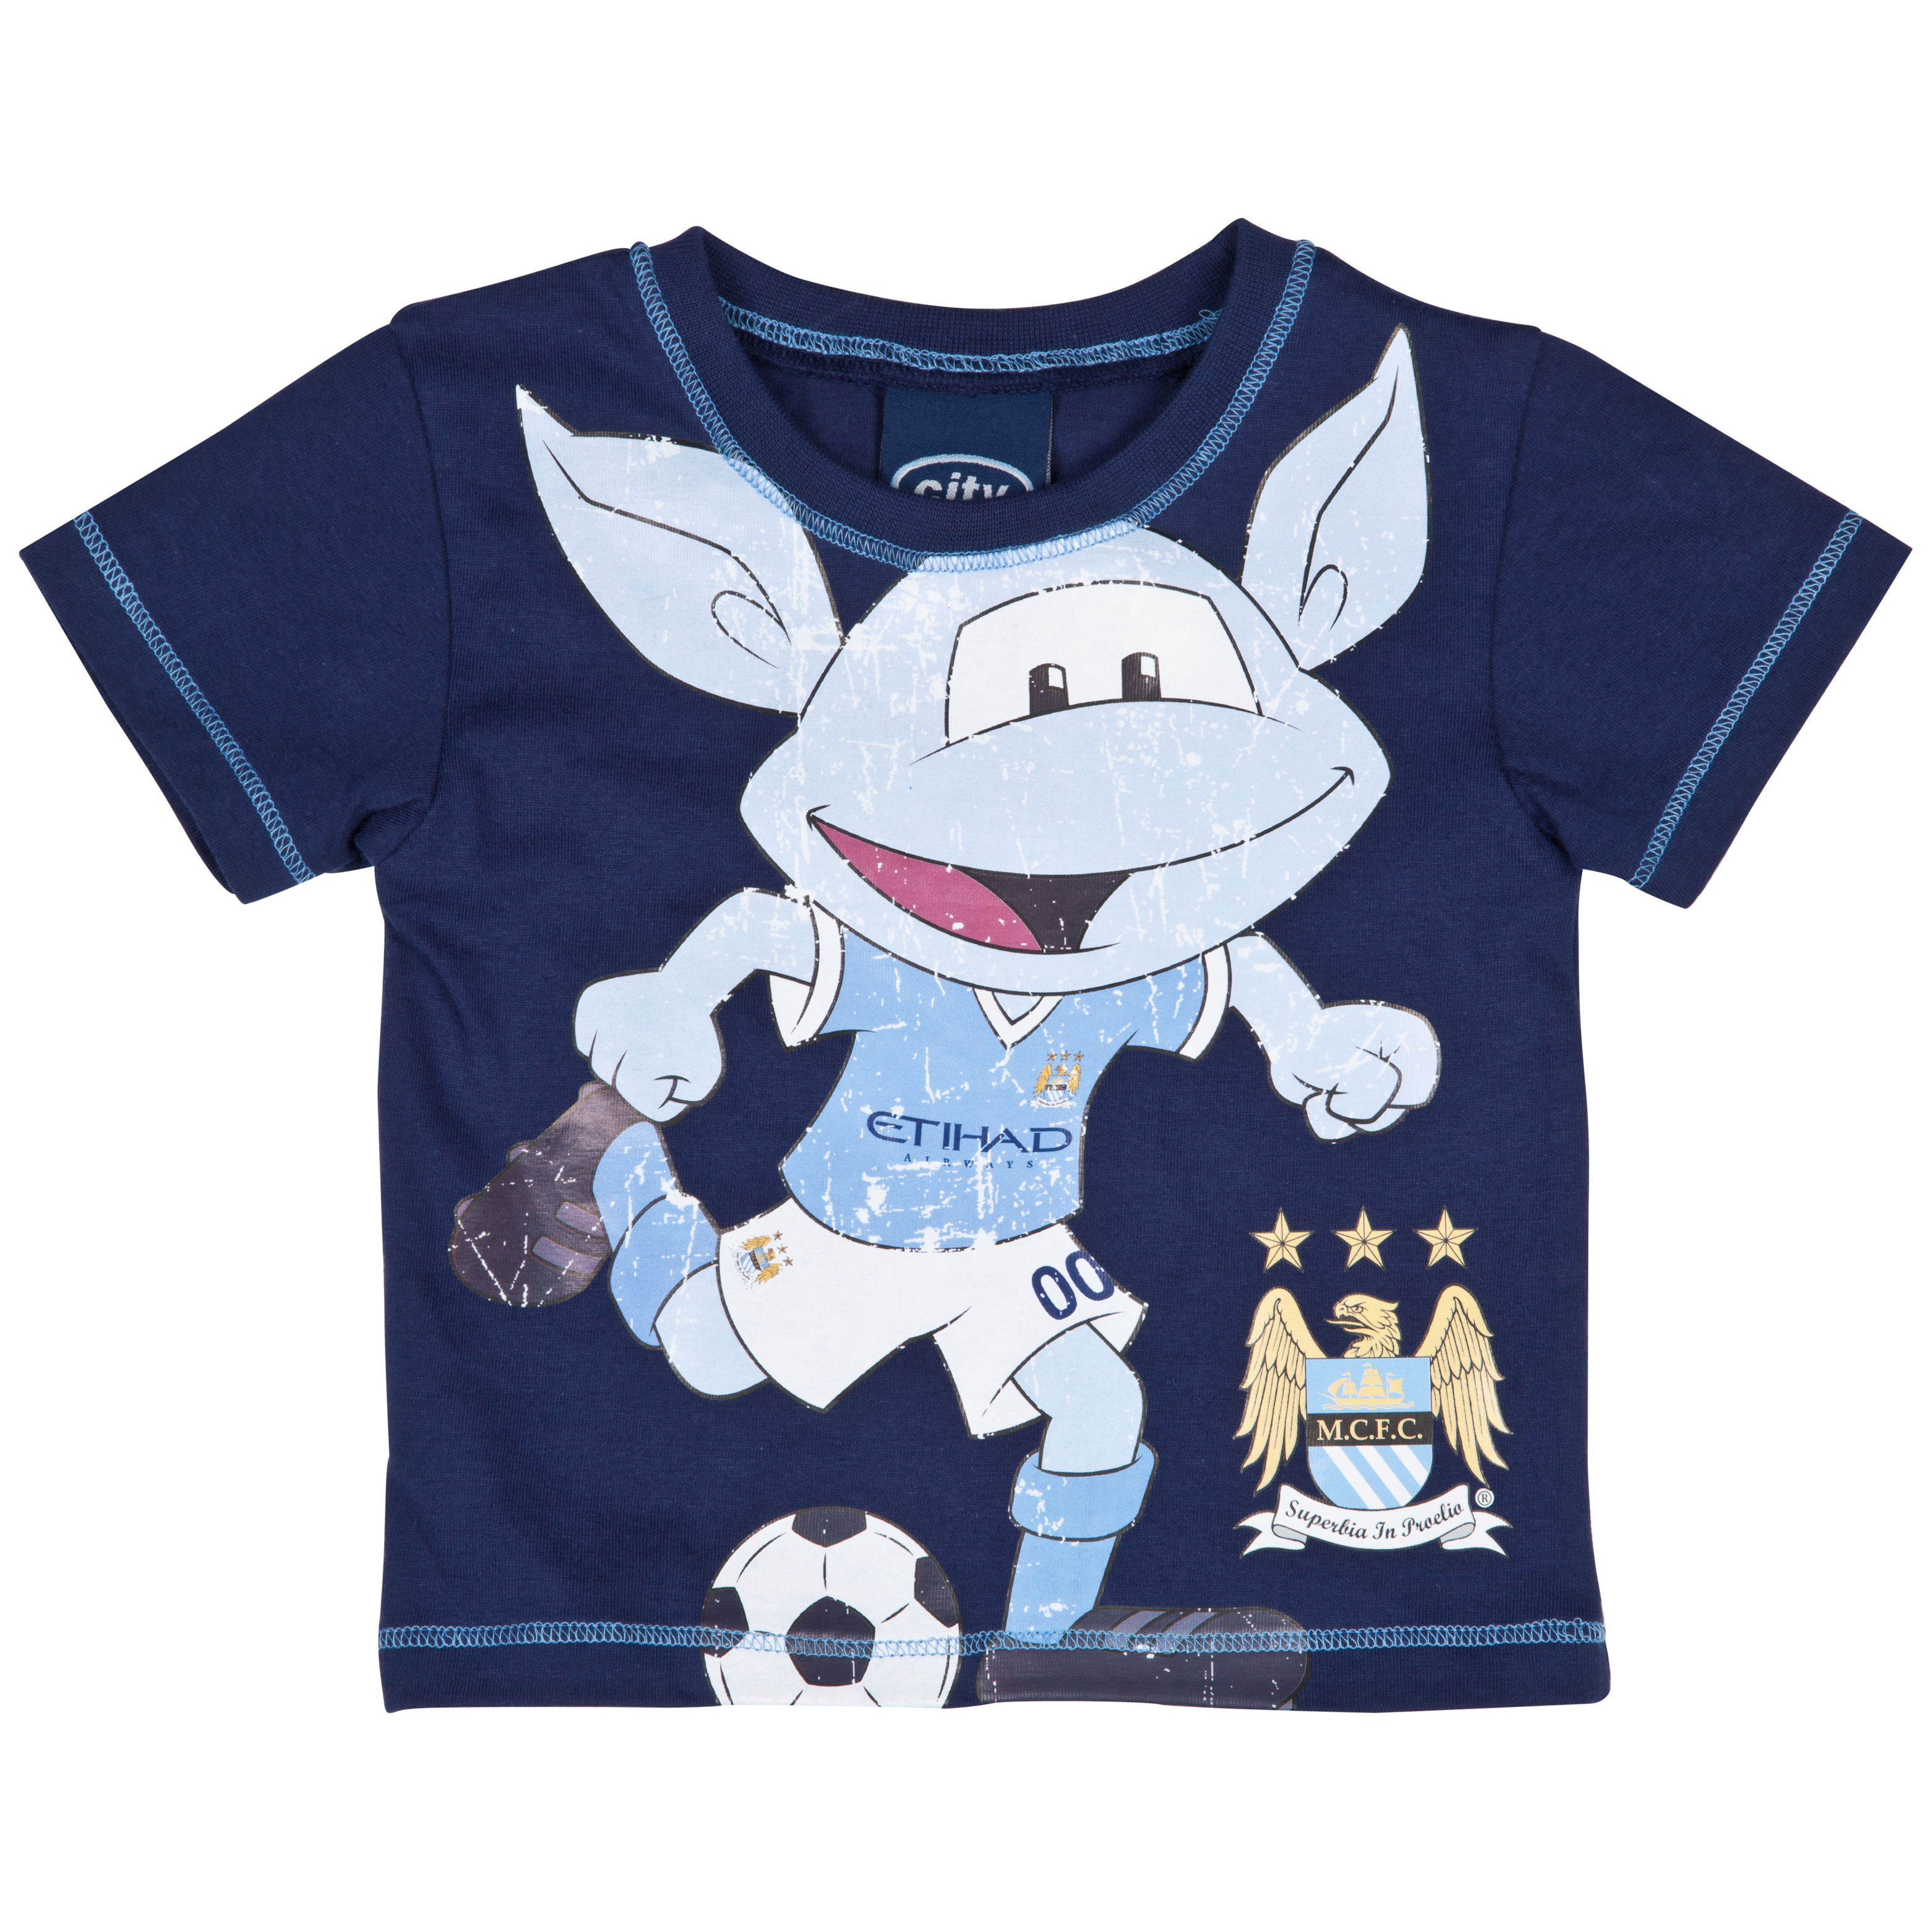 Football/Boys Fashion Babywear